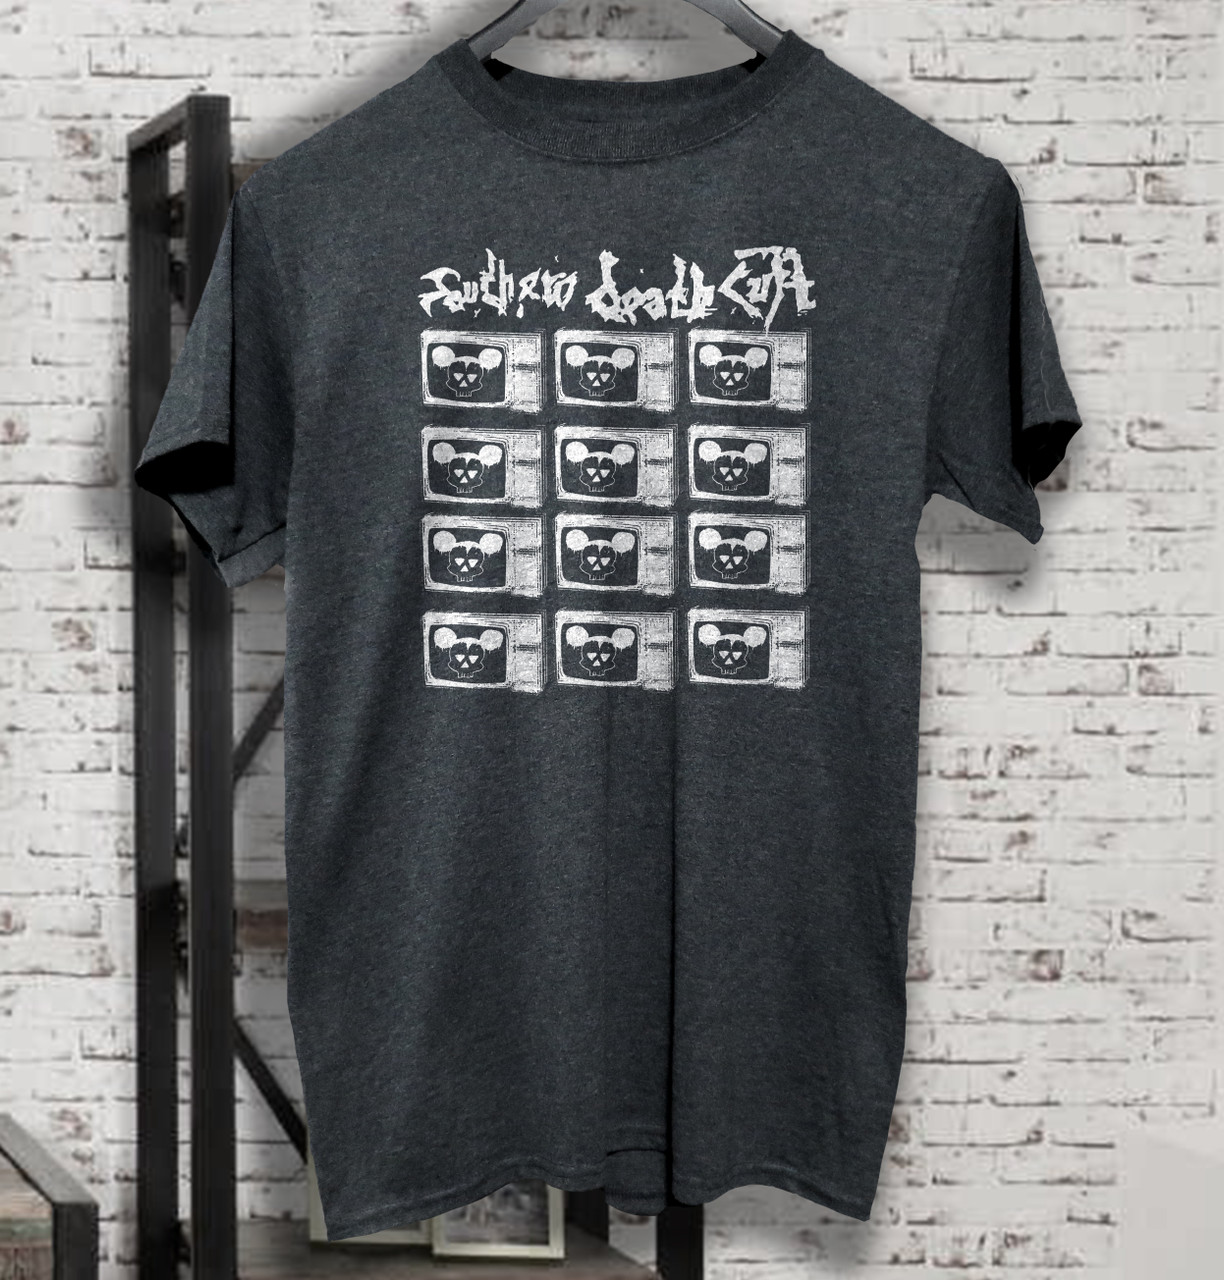 Southern Death Cult band  t shirt